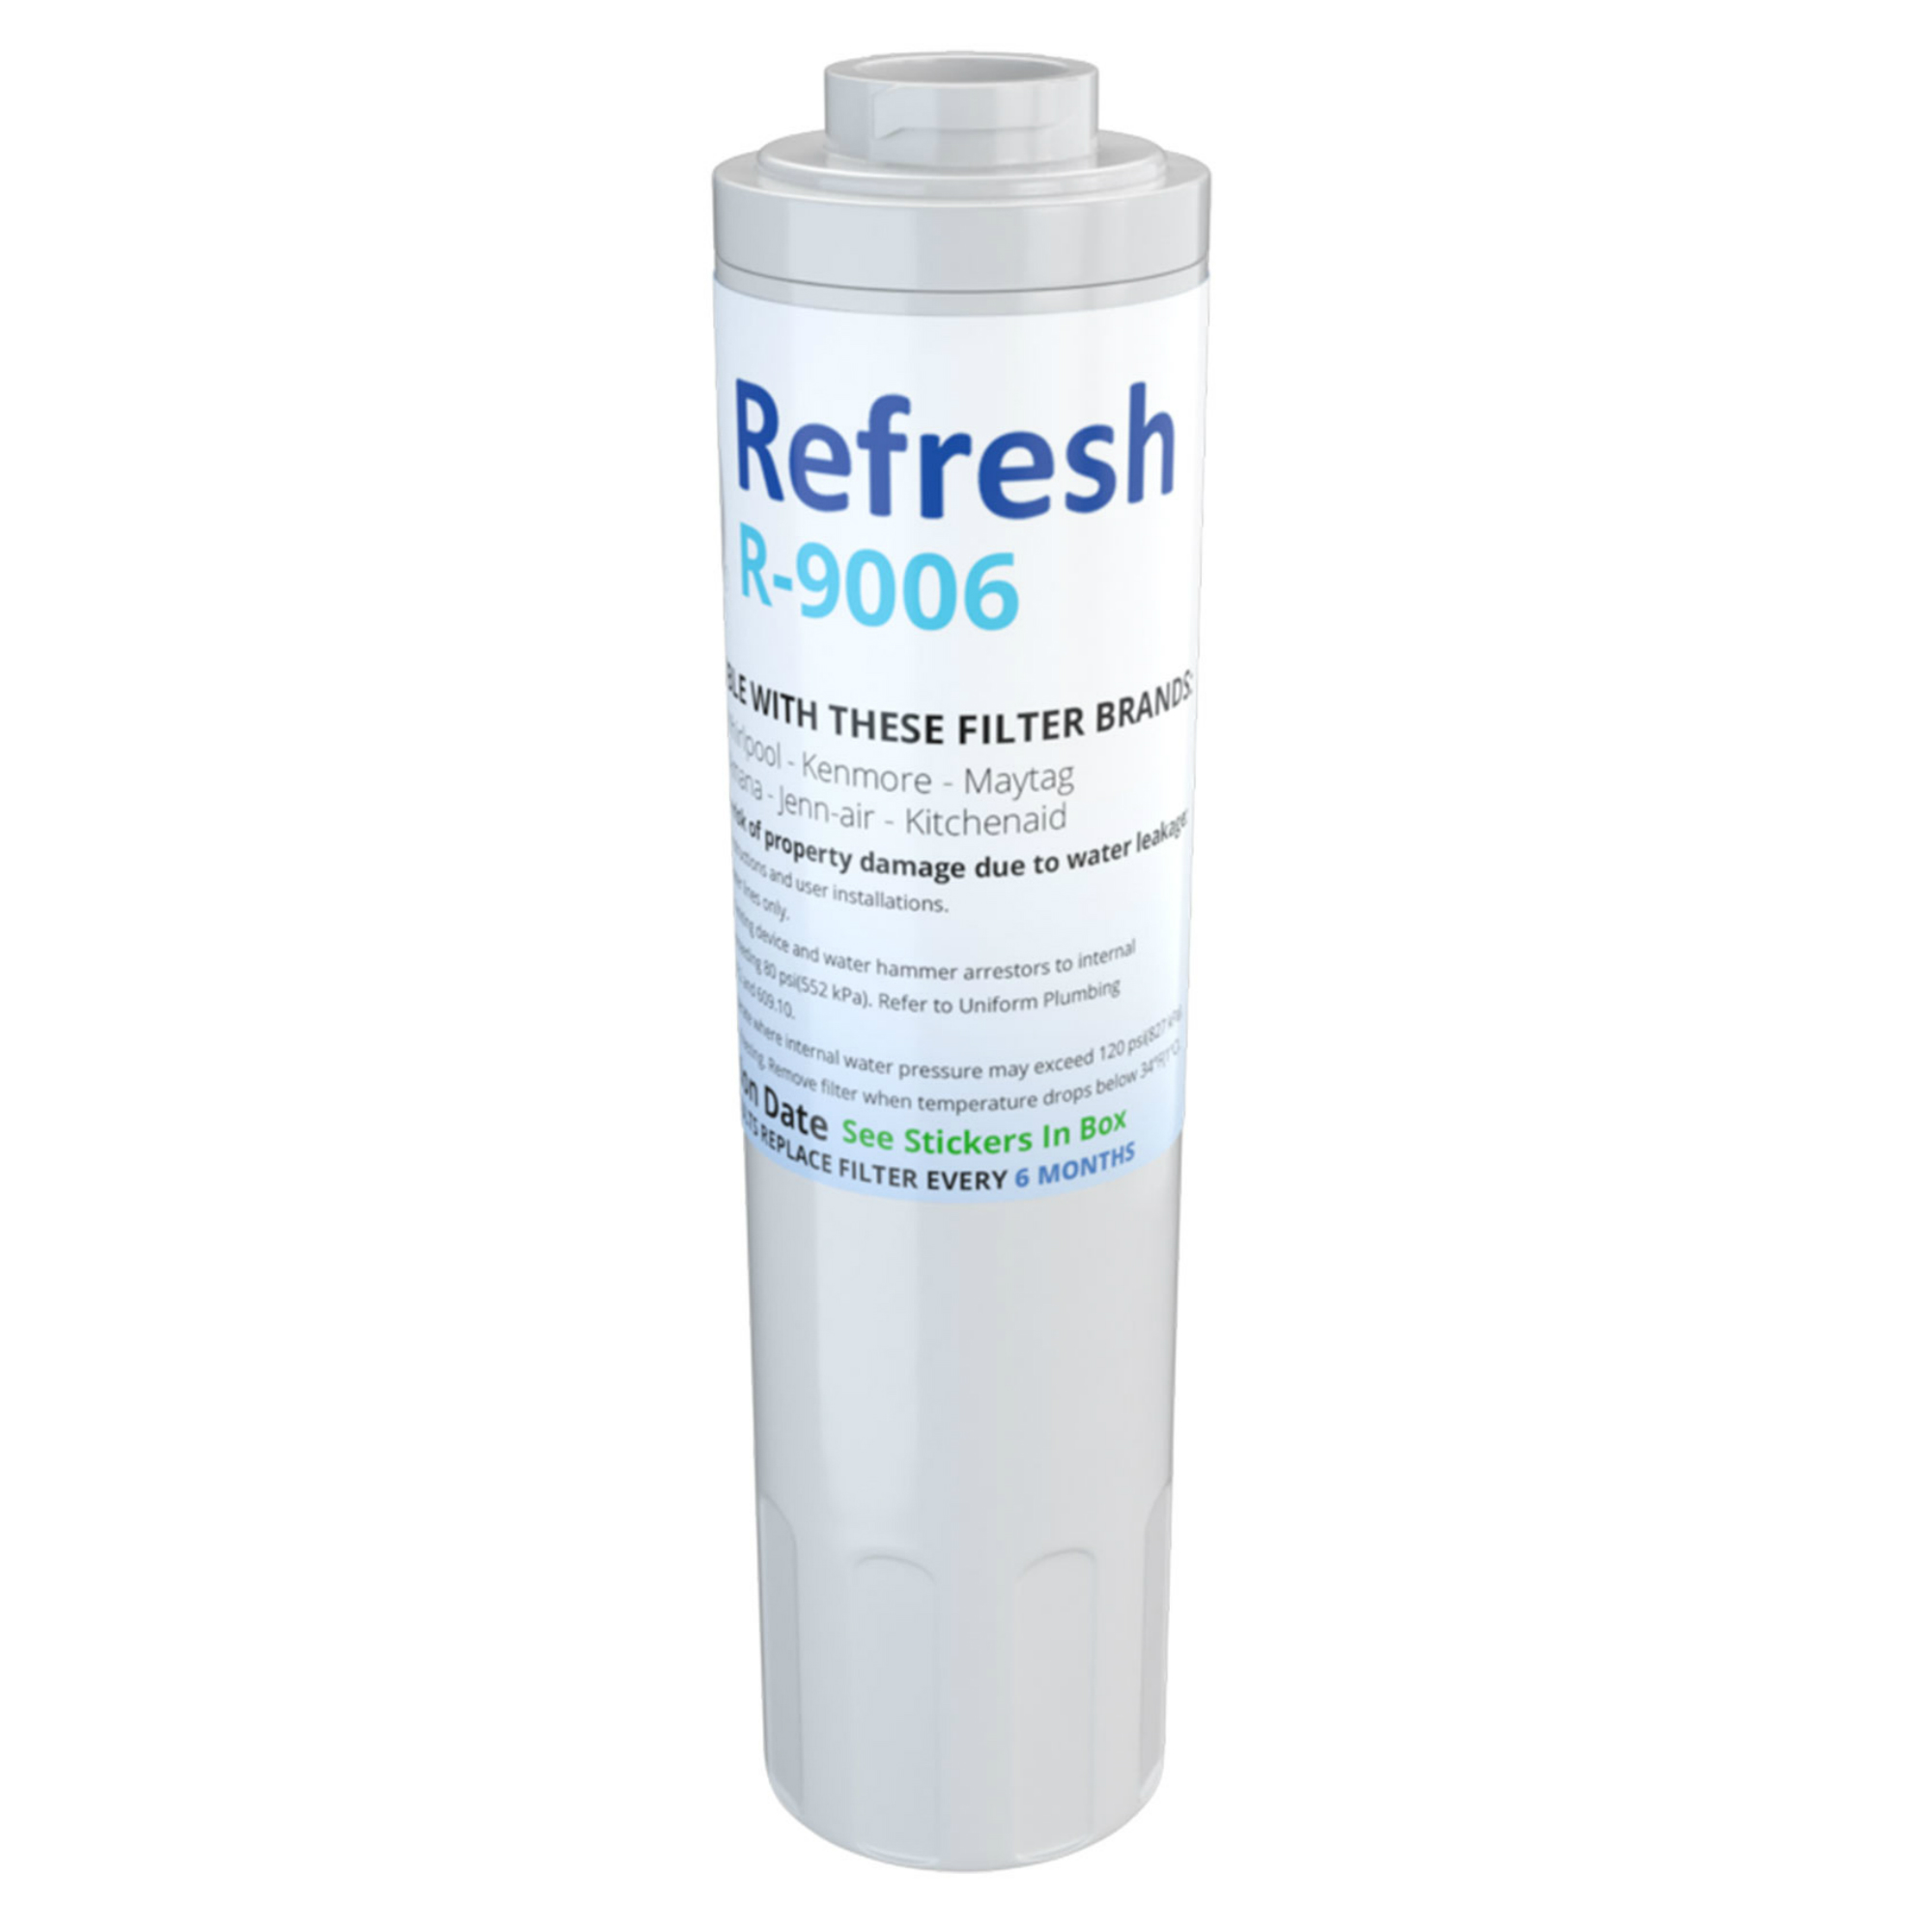 2 Pack Refrigerator water filter Replacement for Jenn-Air UKF8001AXX-750